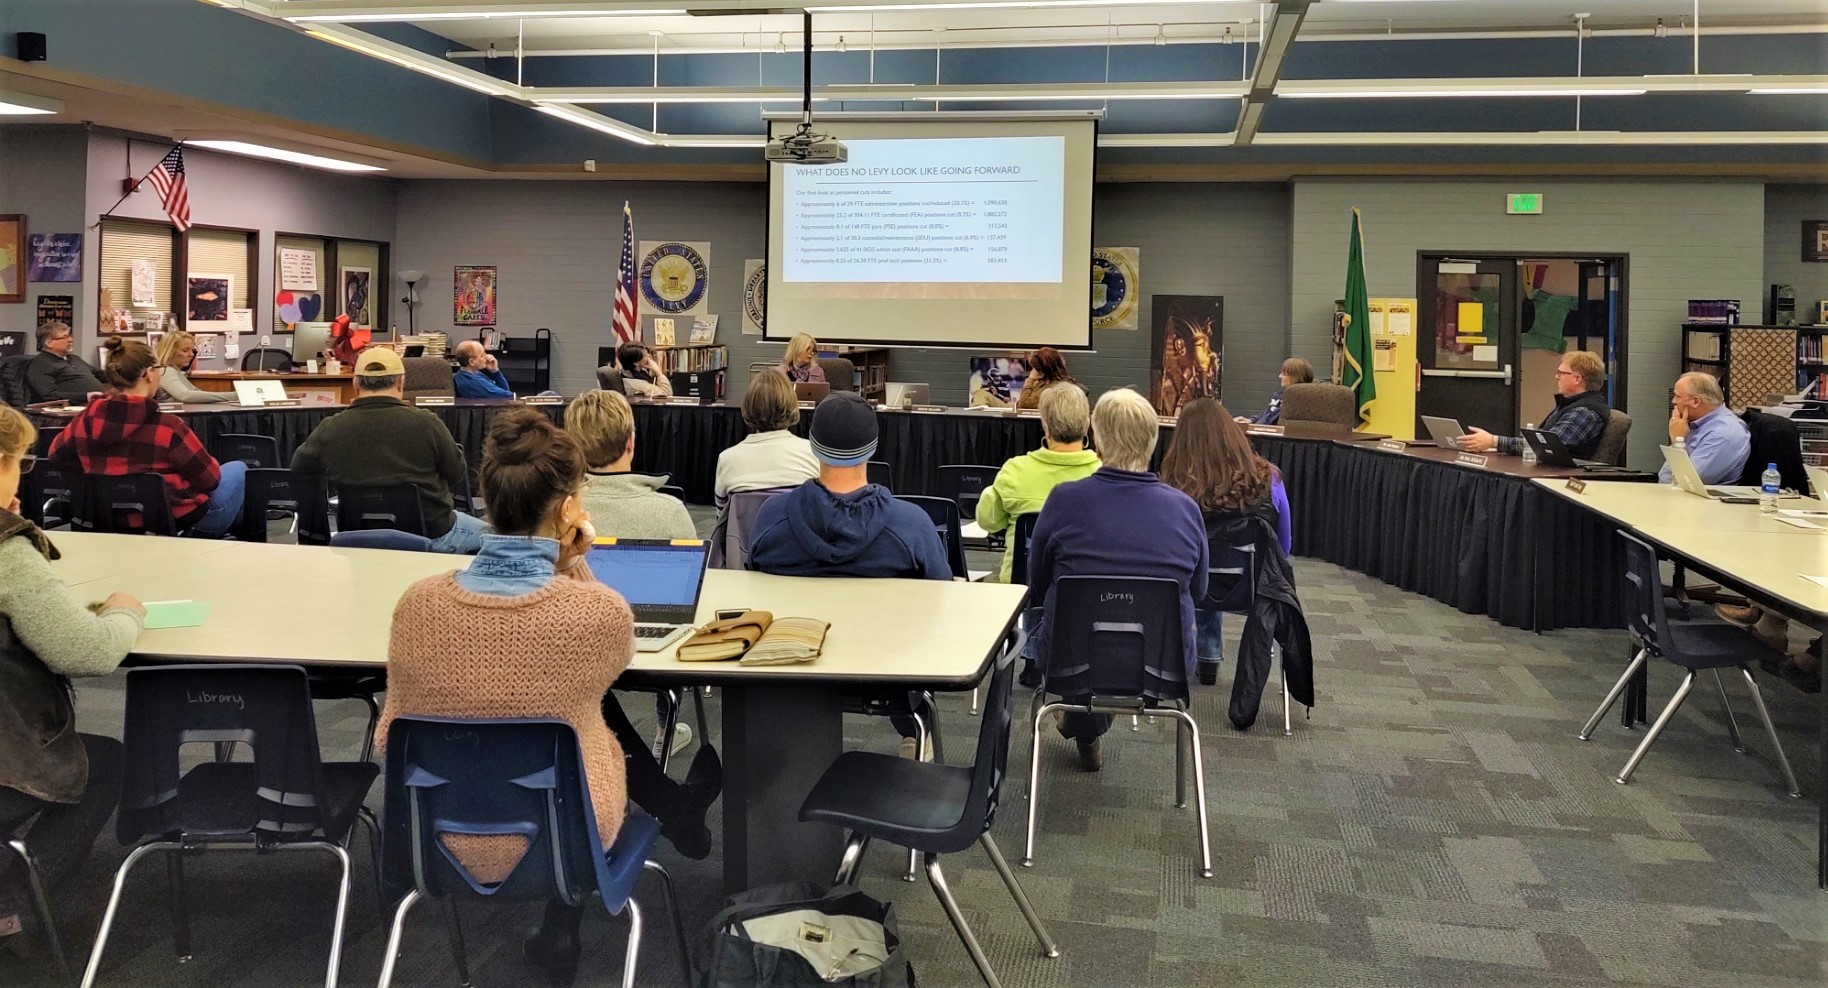 Ferndale School Board emergency special meeting at Vista Middle School library (February 17, 2020). Photo: My Ferndale News